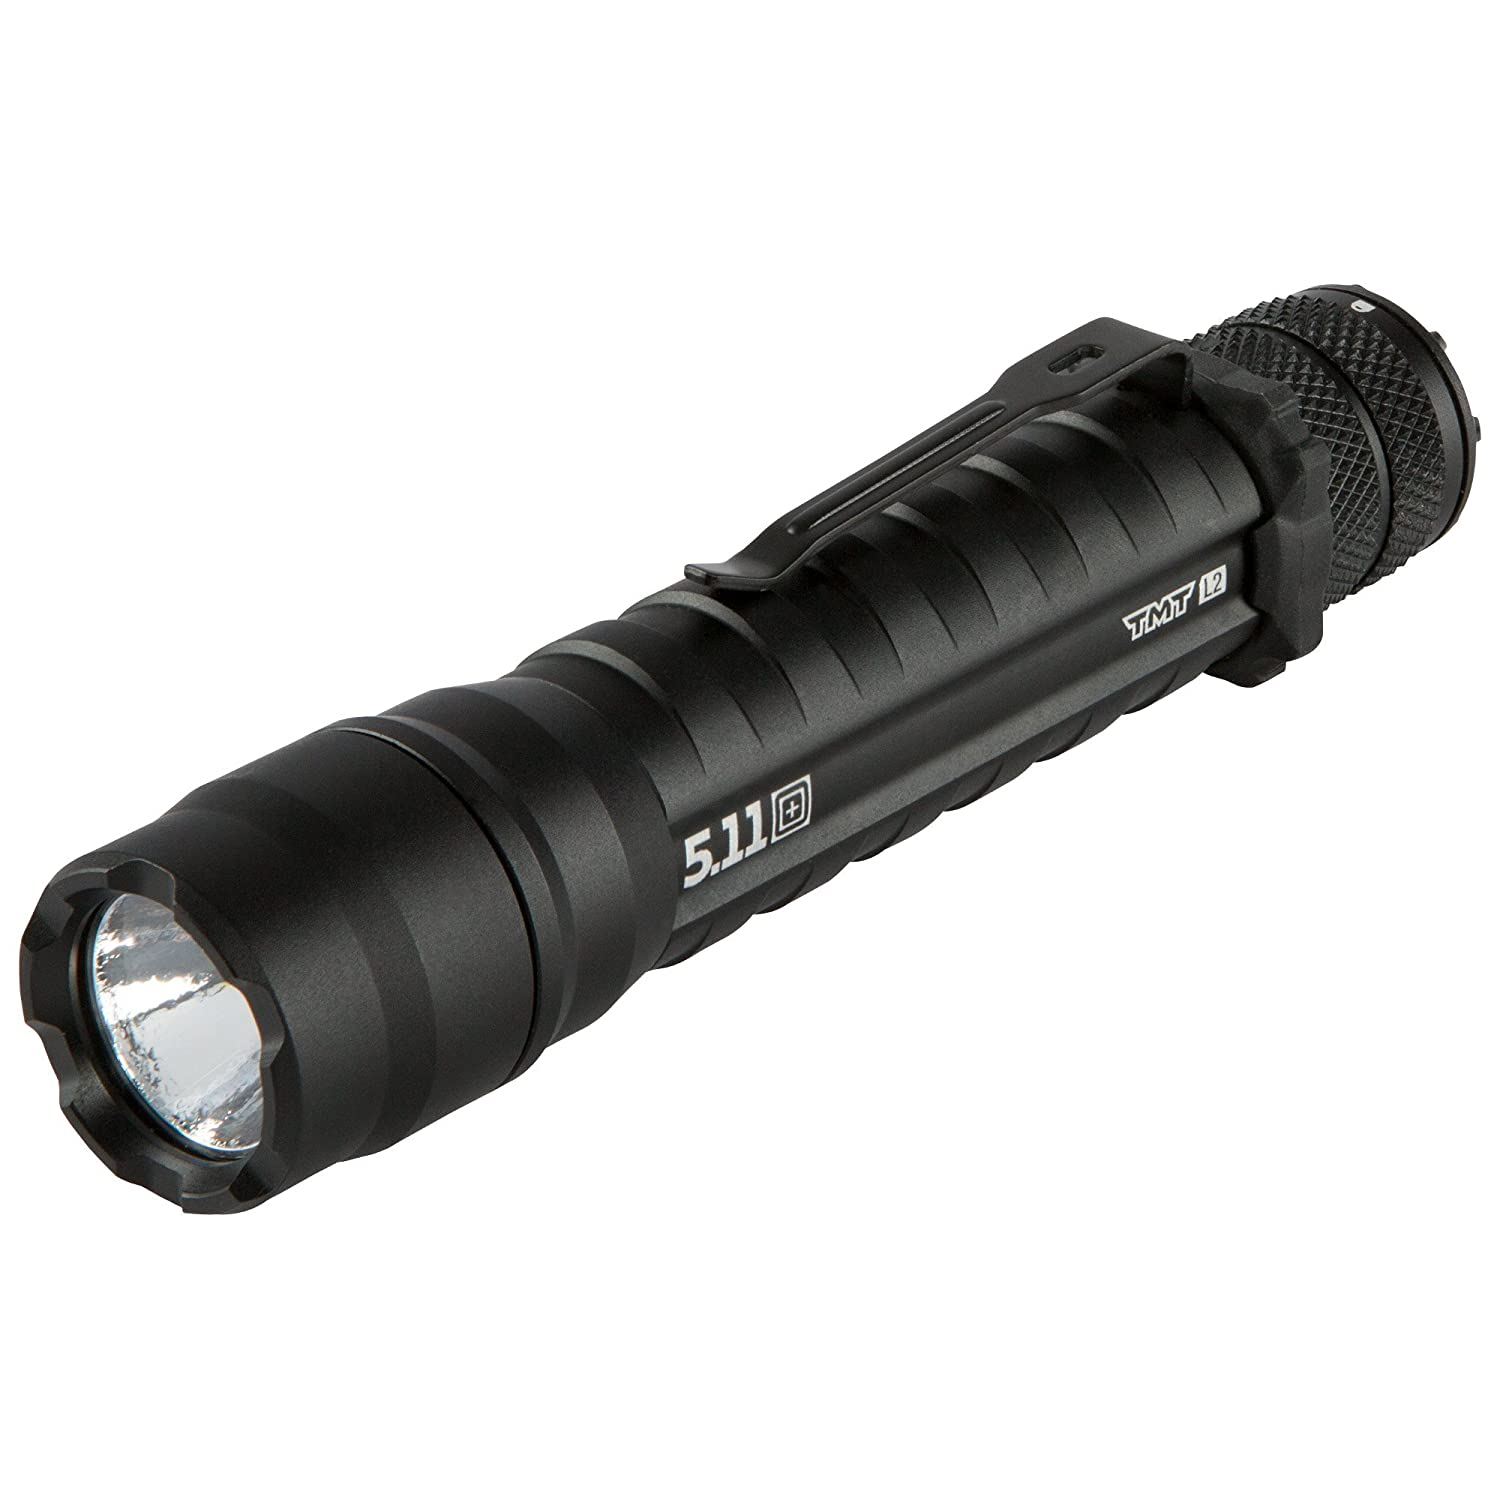 5.11 TMT Flashlight L2 Flashlight TMT - ccc2e0